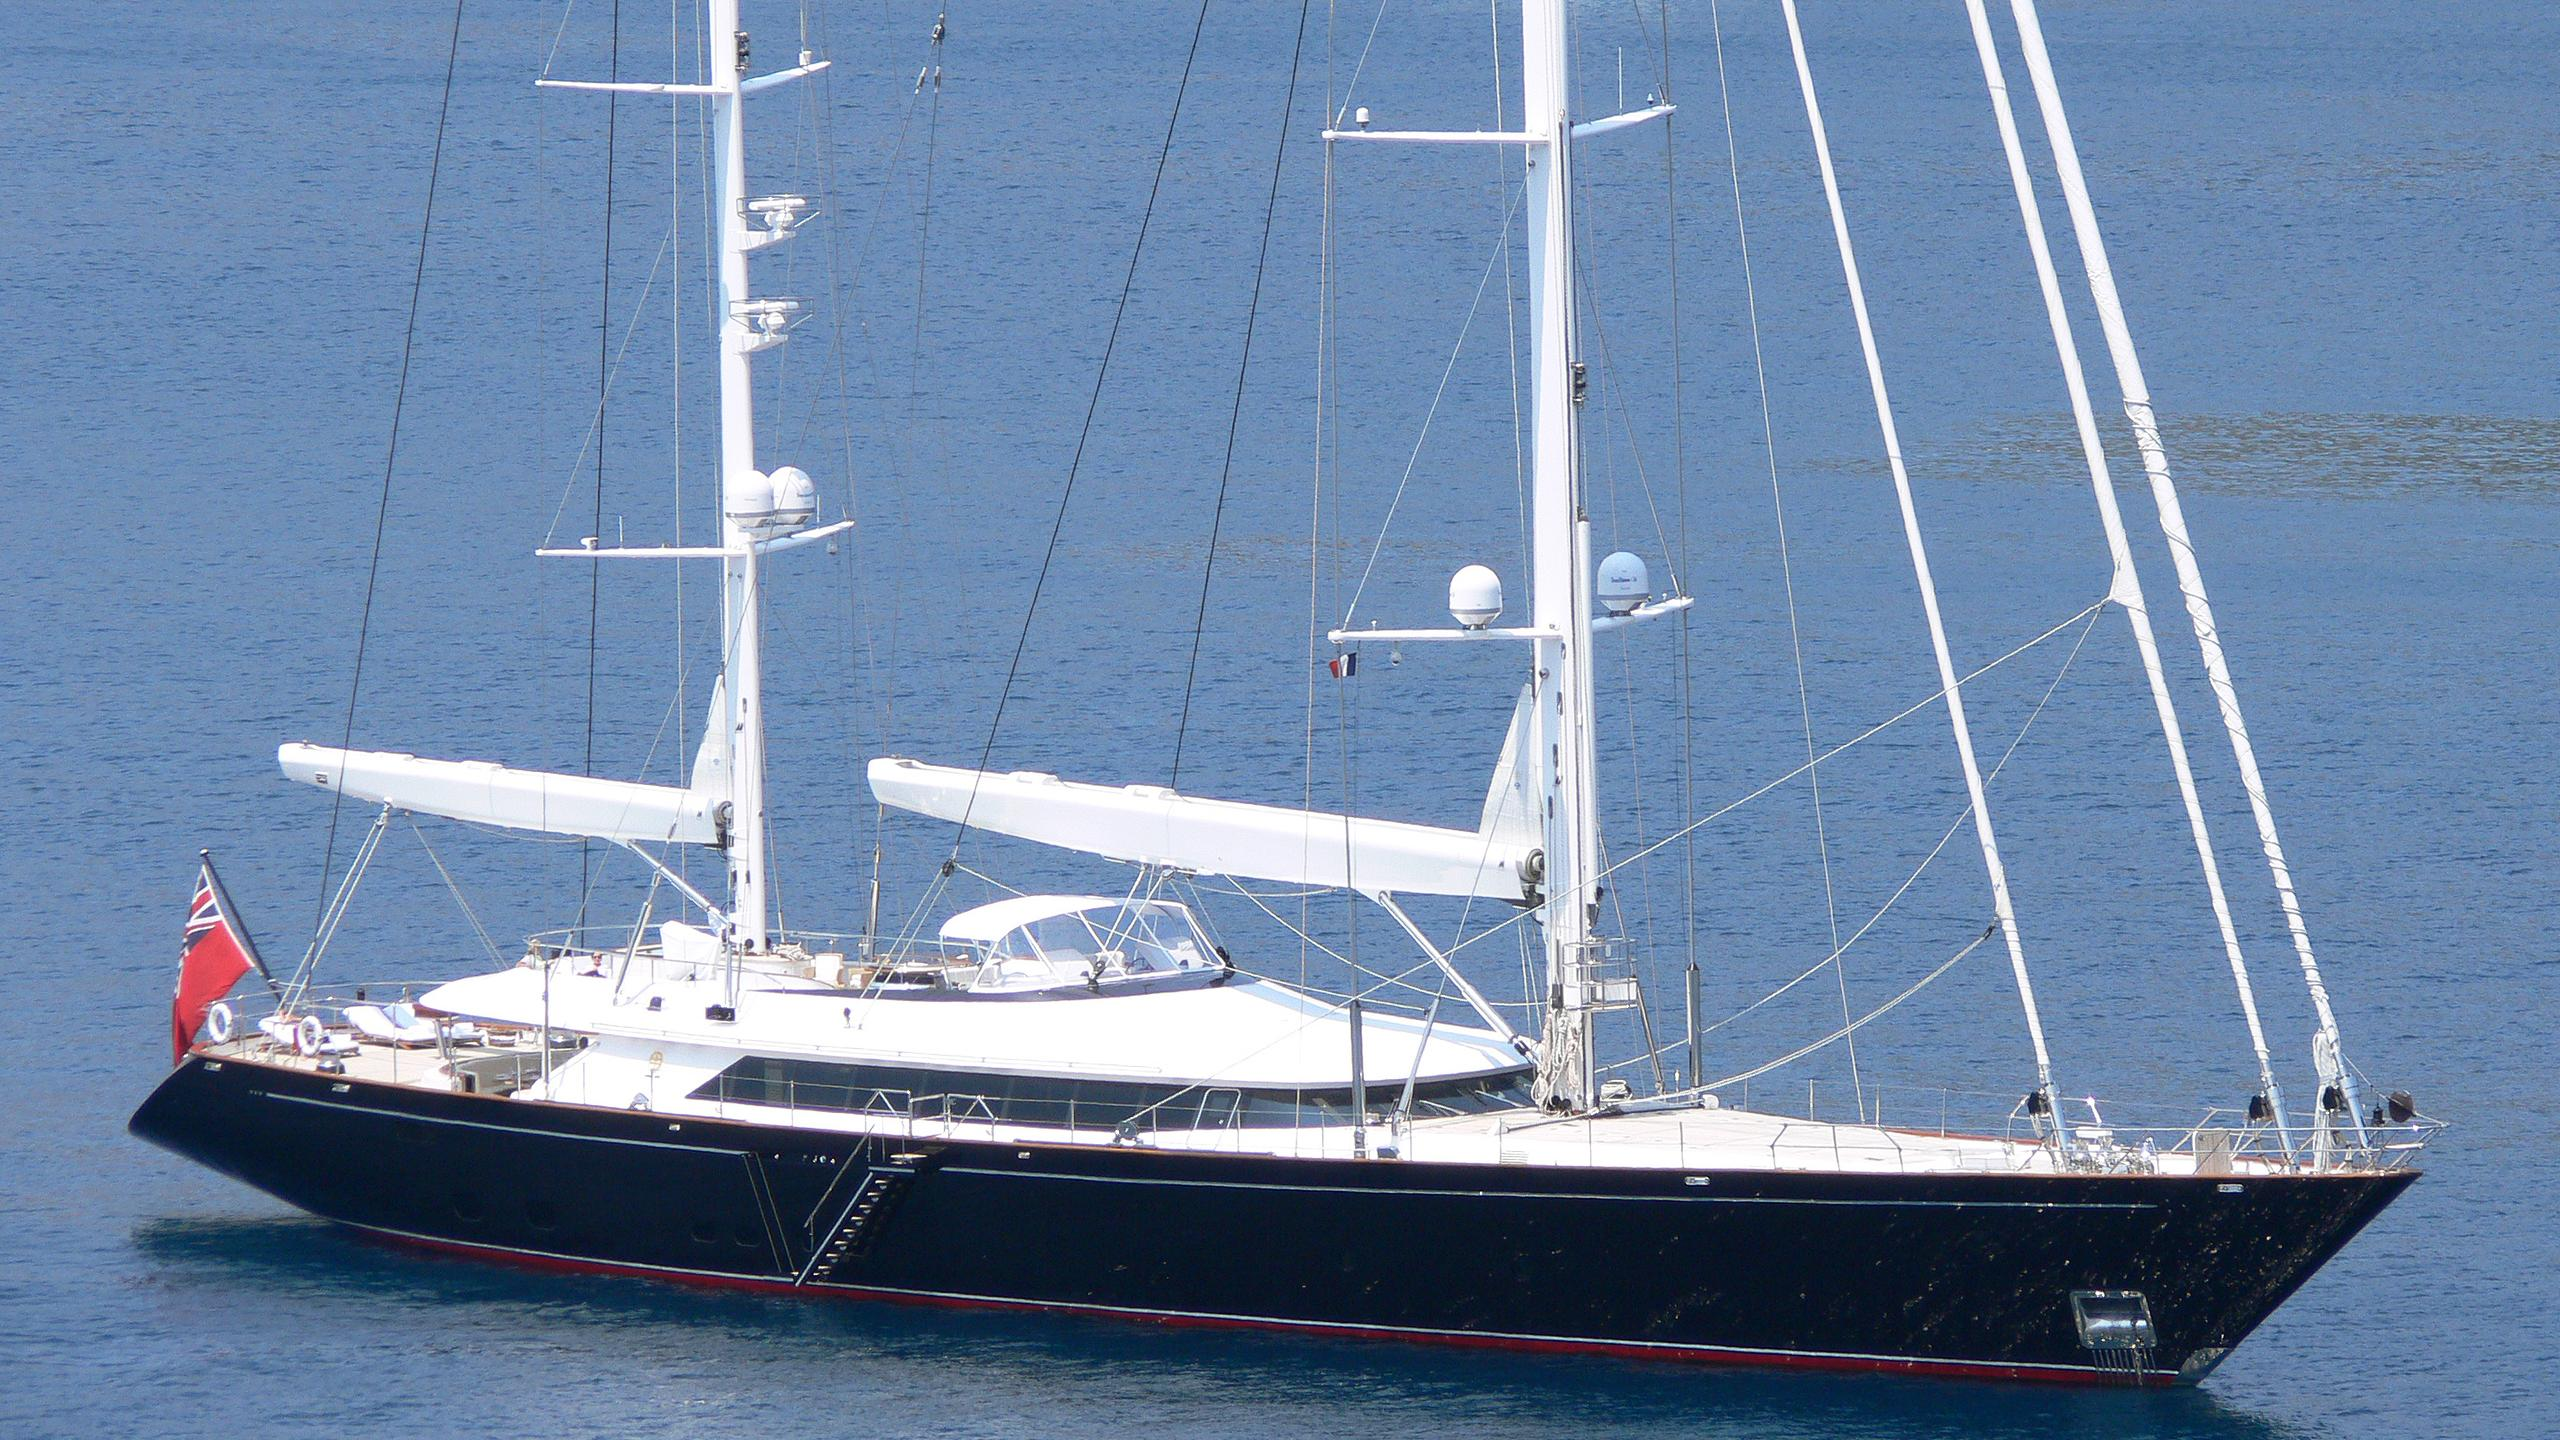 parsifal-iii-yacht-exterior